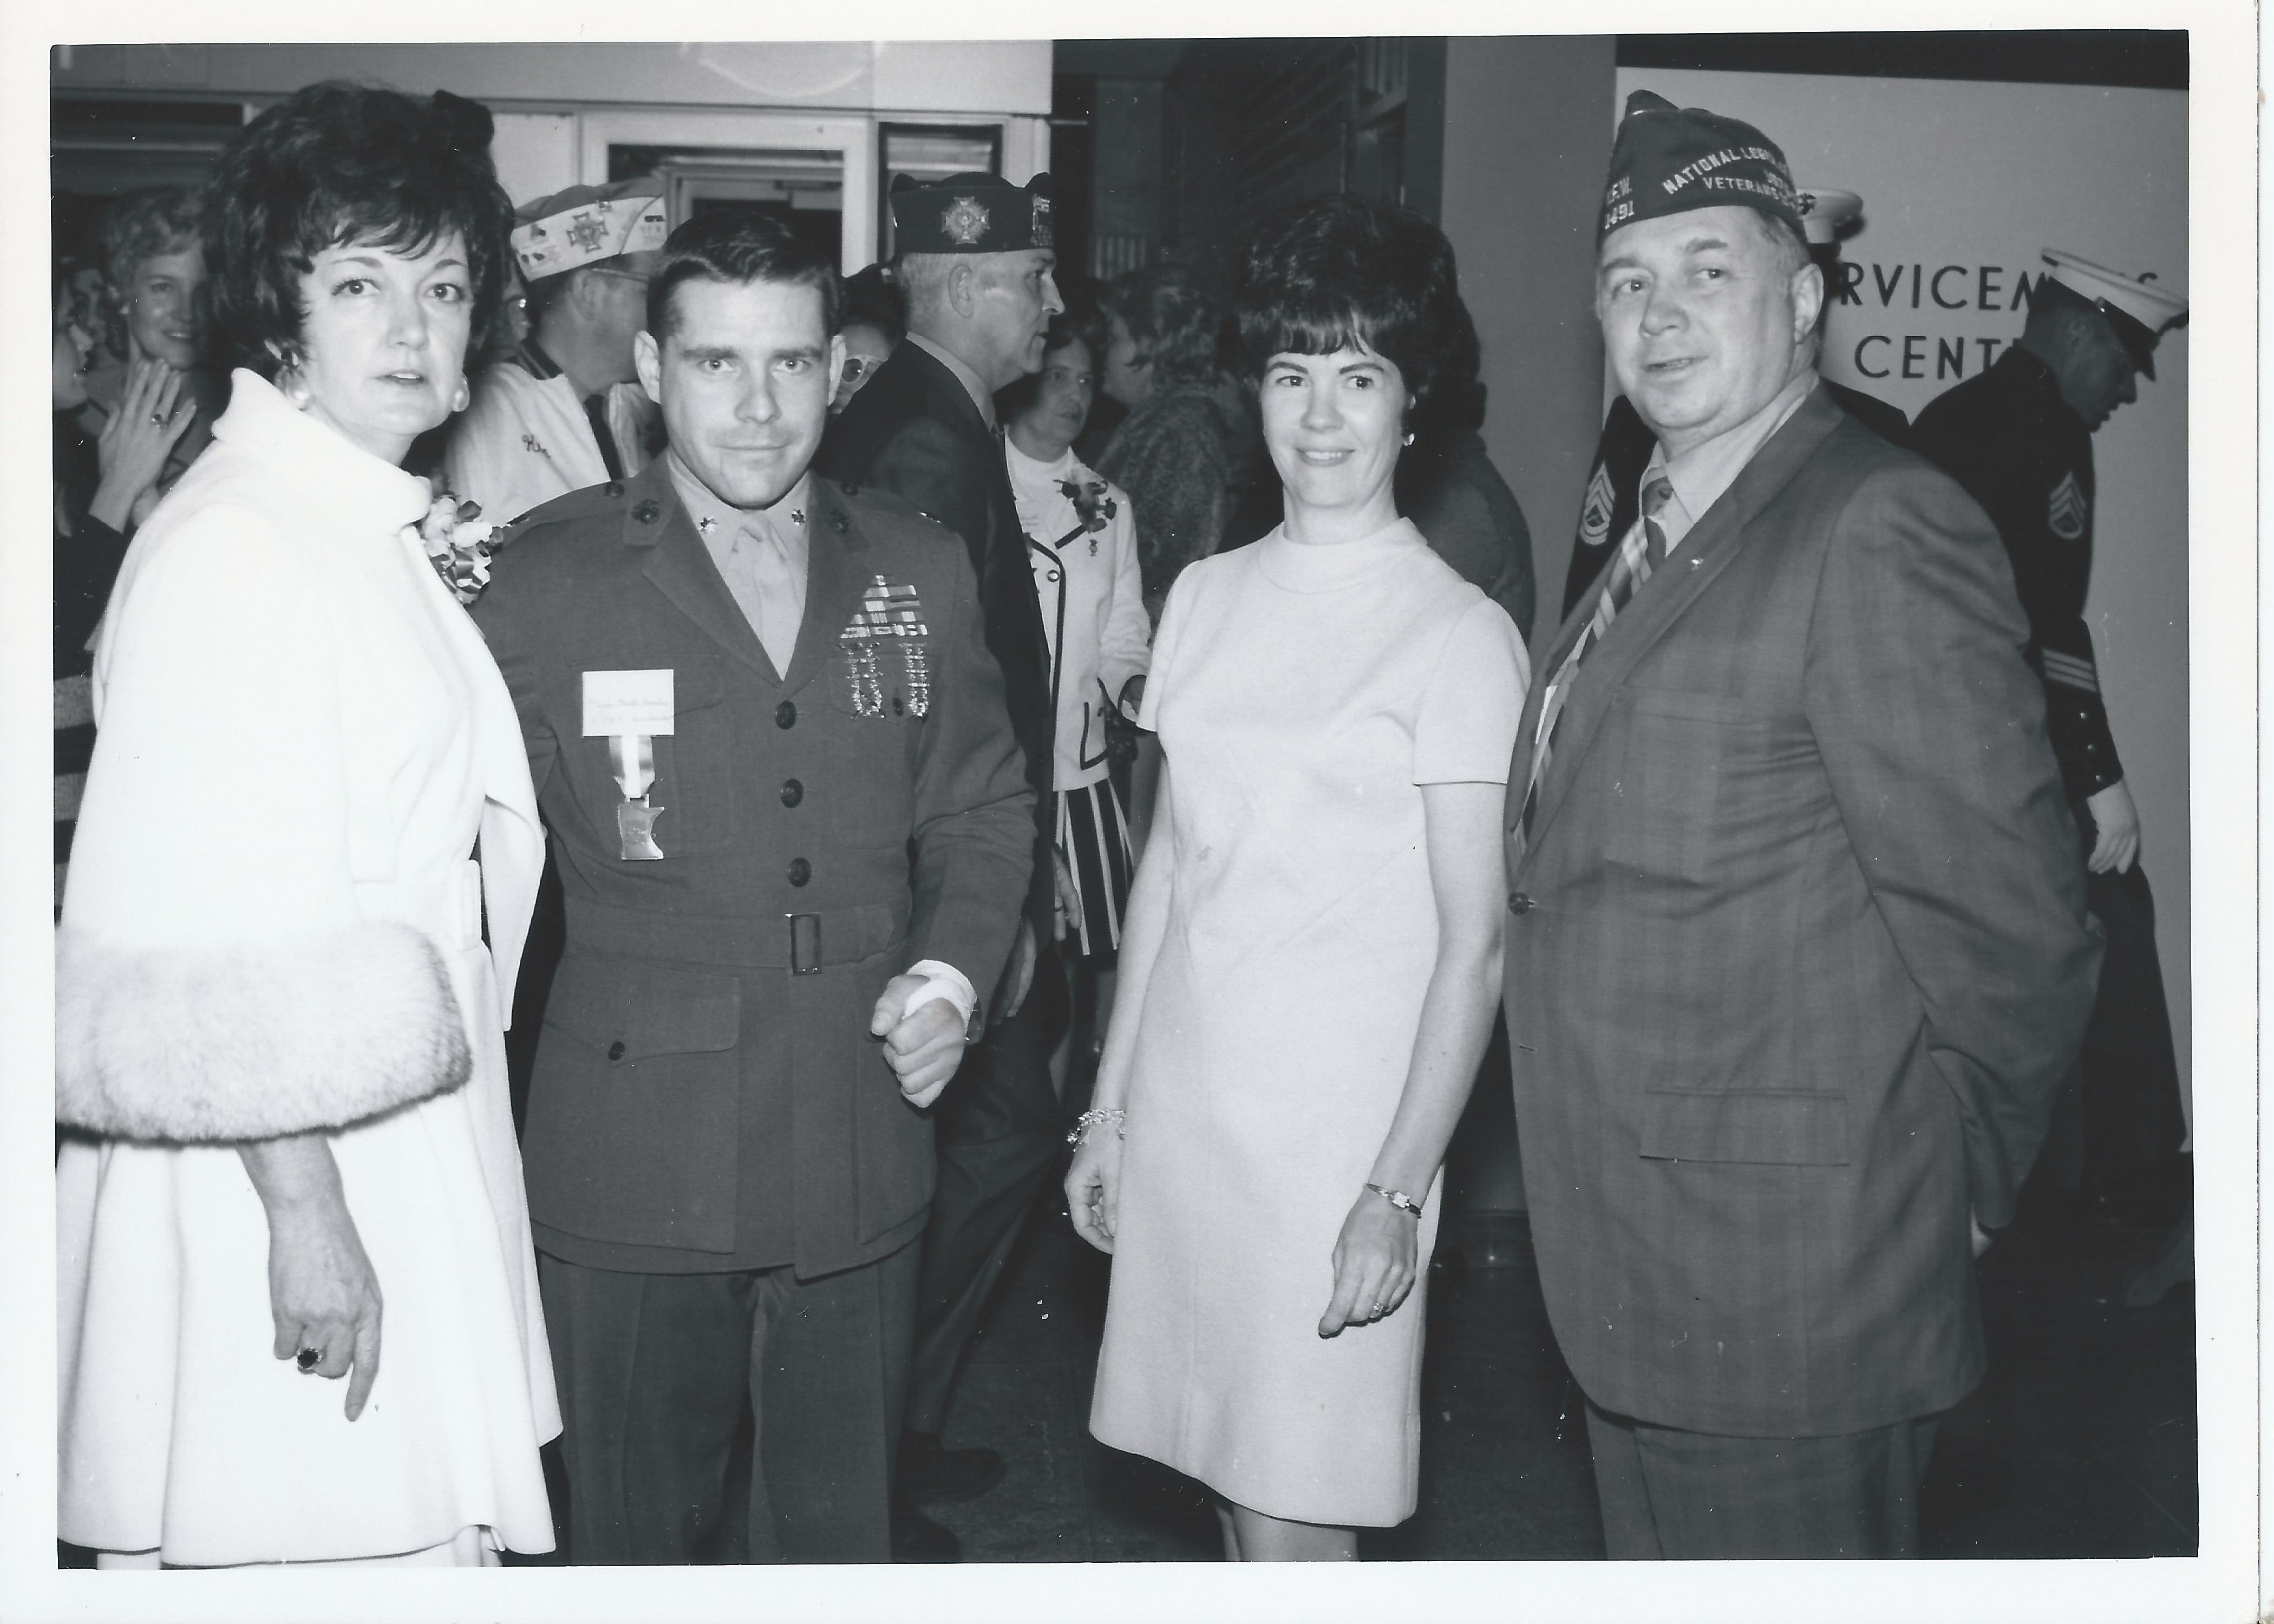 1970 Nov 22 - Opening Day Visitors(5) Maggie Purdum, Board VP Maj Marty Brandtner, Guest & Vern Anderson